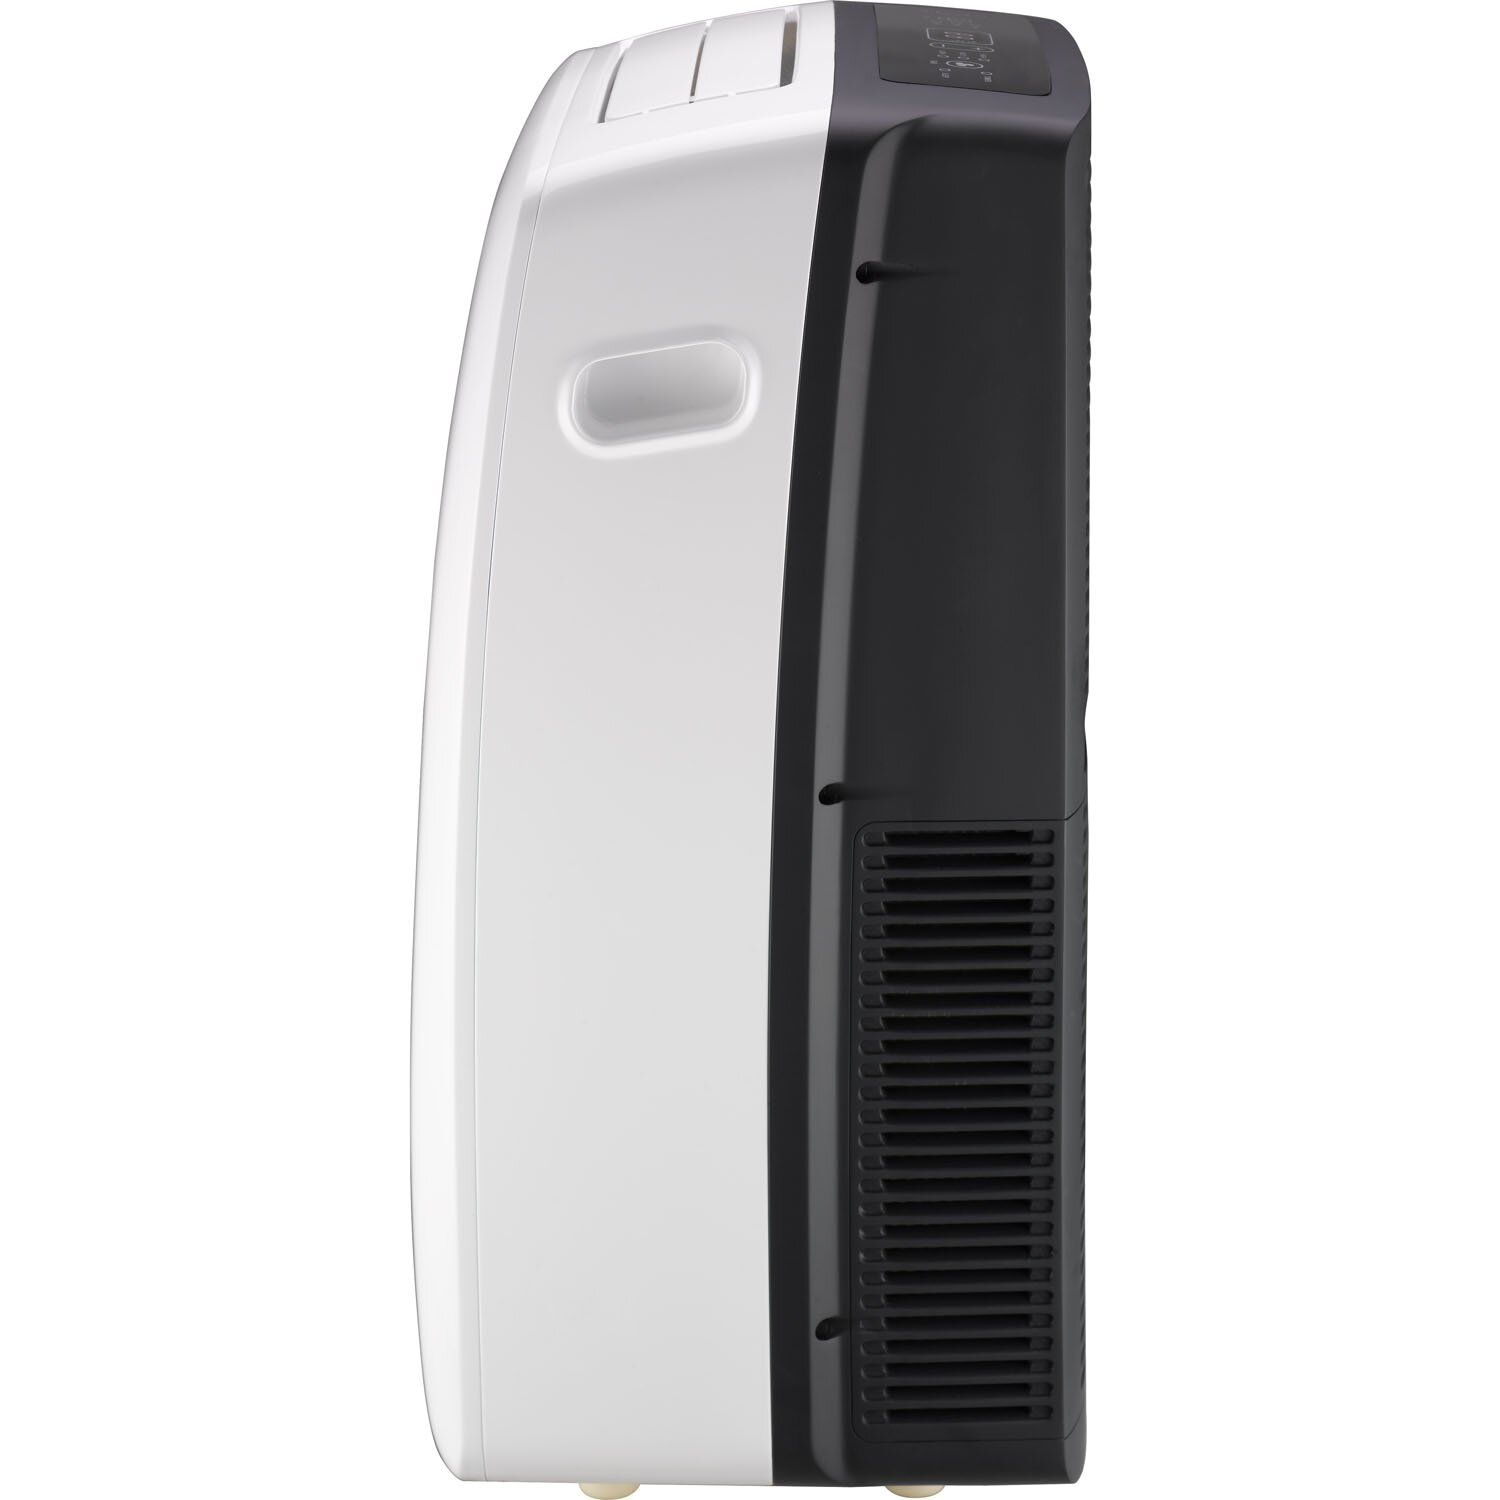 Arctic king btu artic king horizontal air conditioner btu for 12000 btu window air conditioner 220v